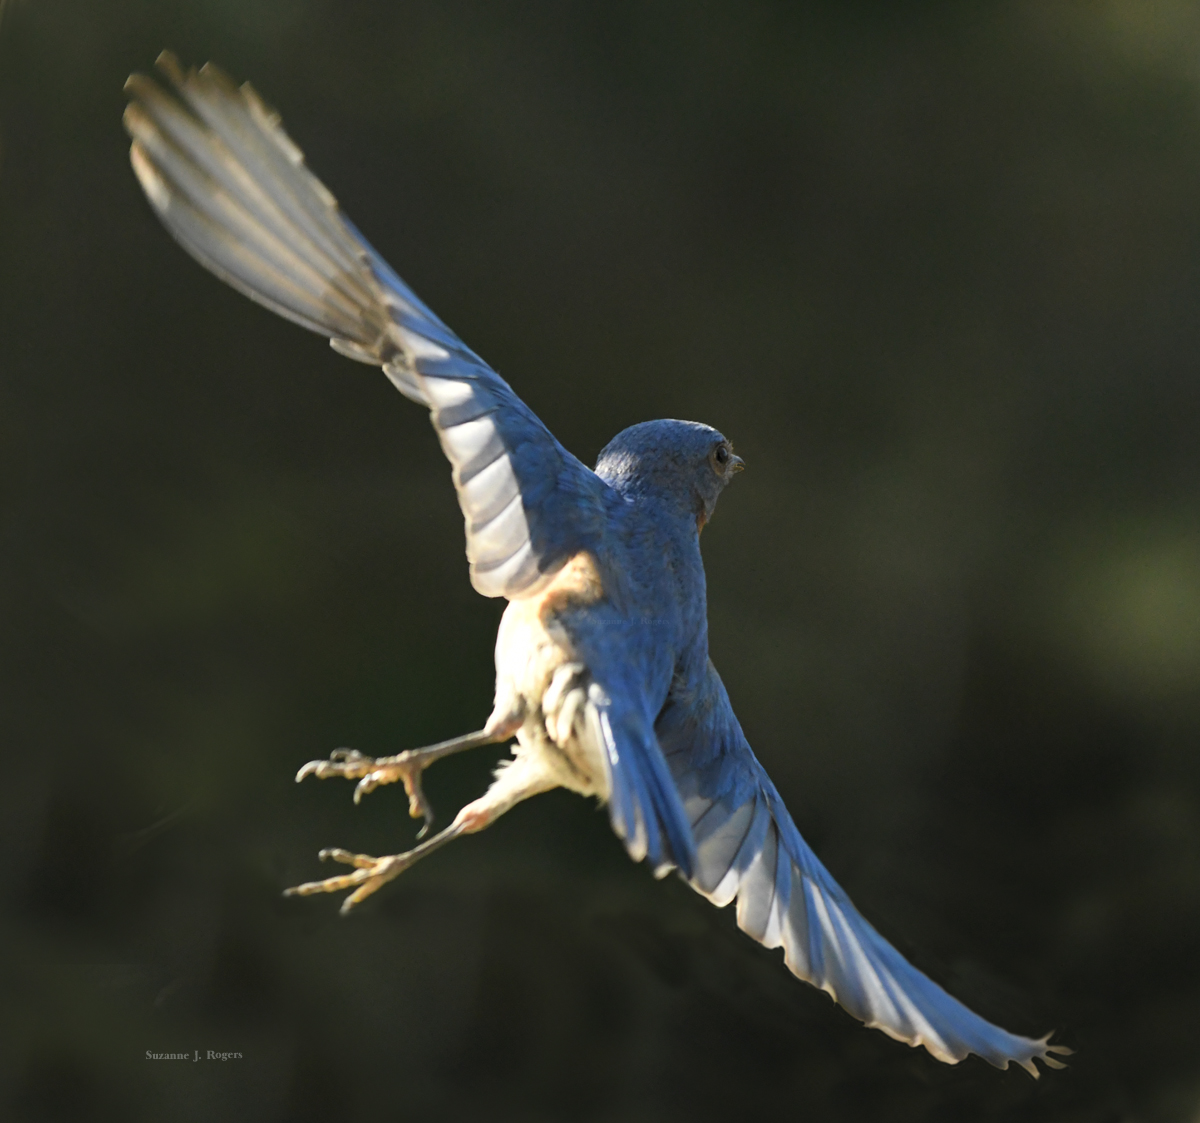 Bluejay in flight 2 wm's